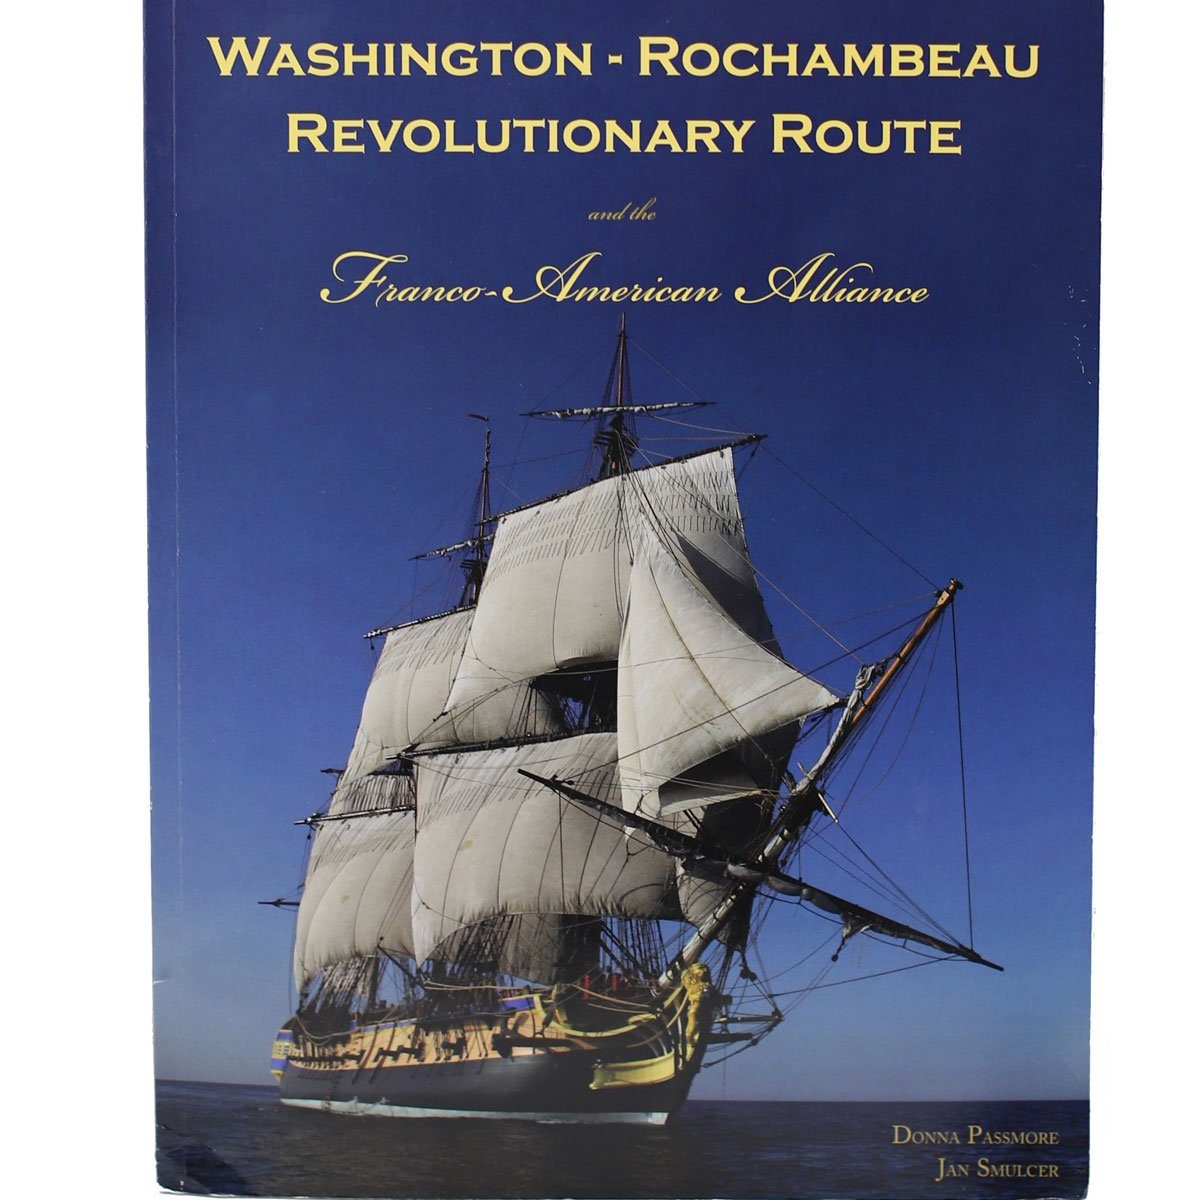 Washington – Rochambeau Revolutionary Route